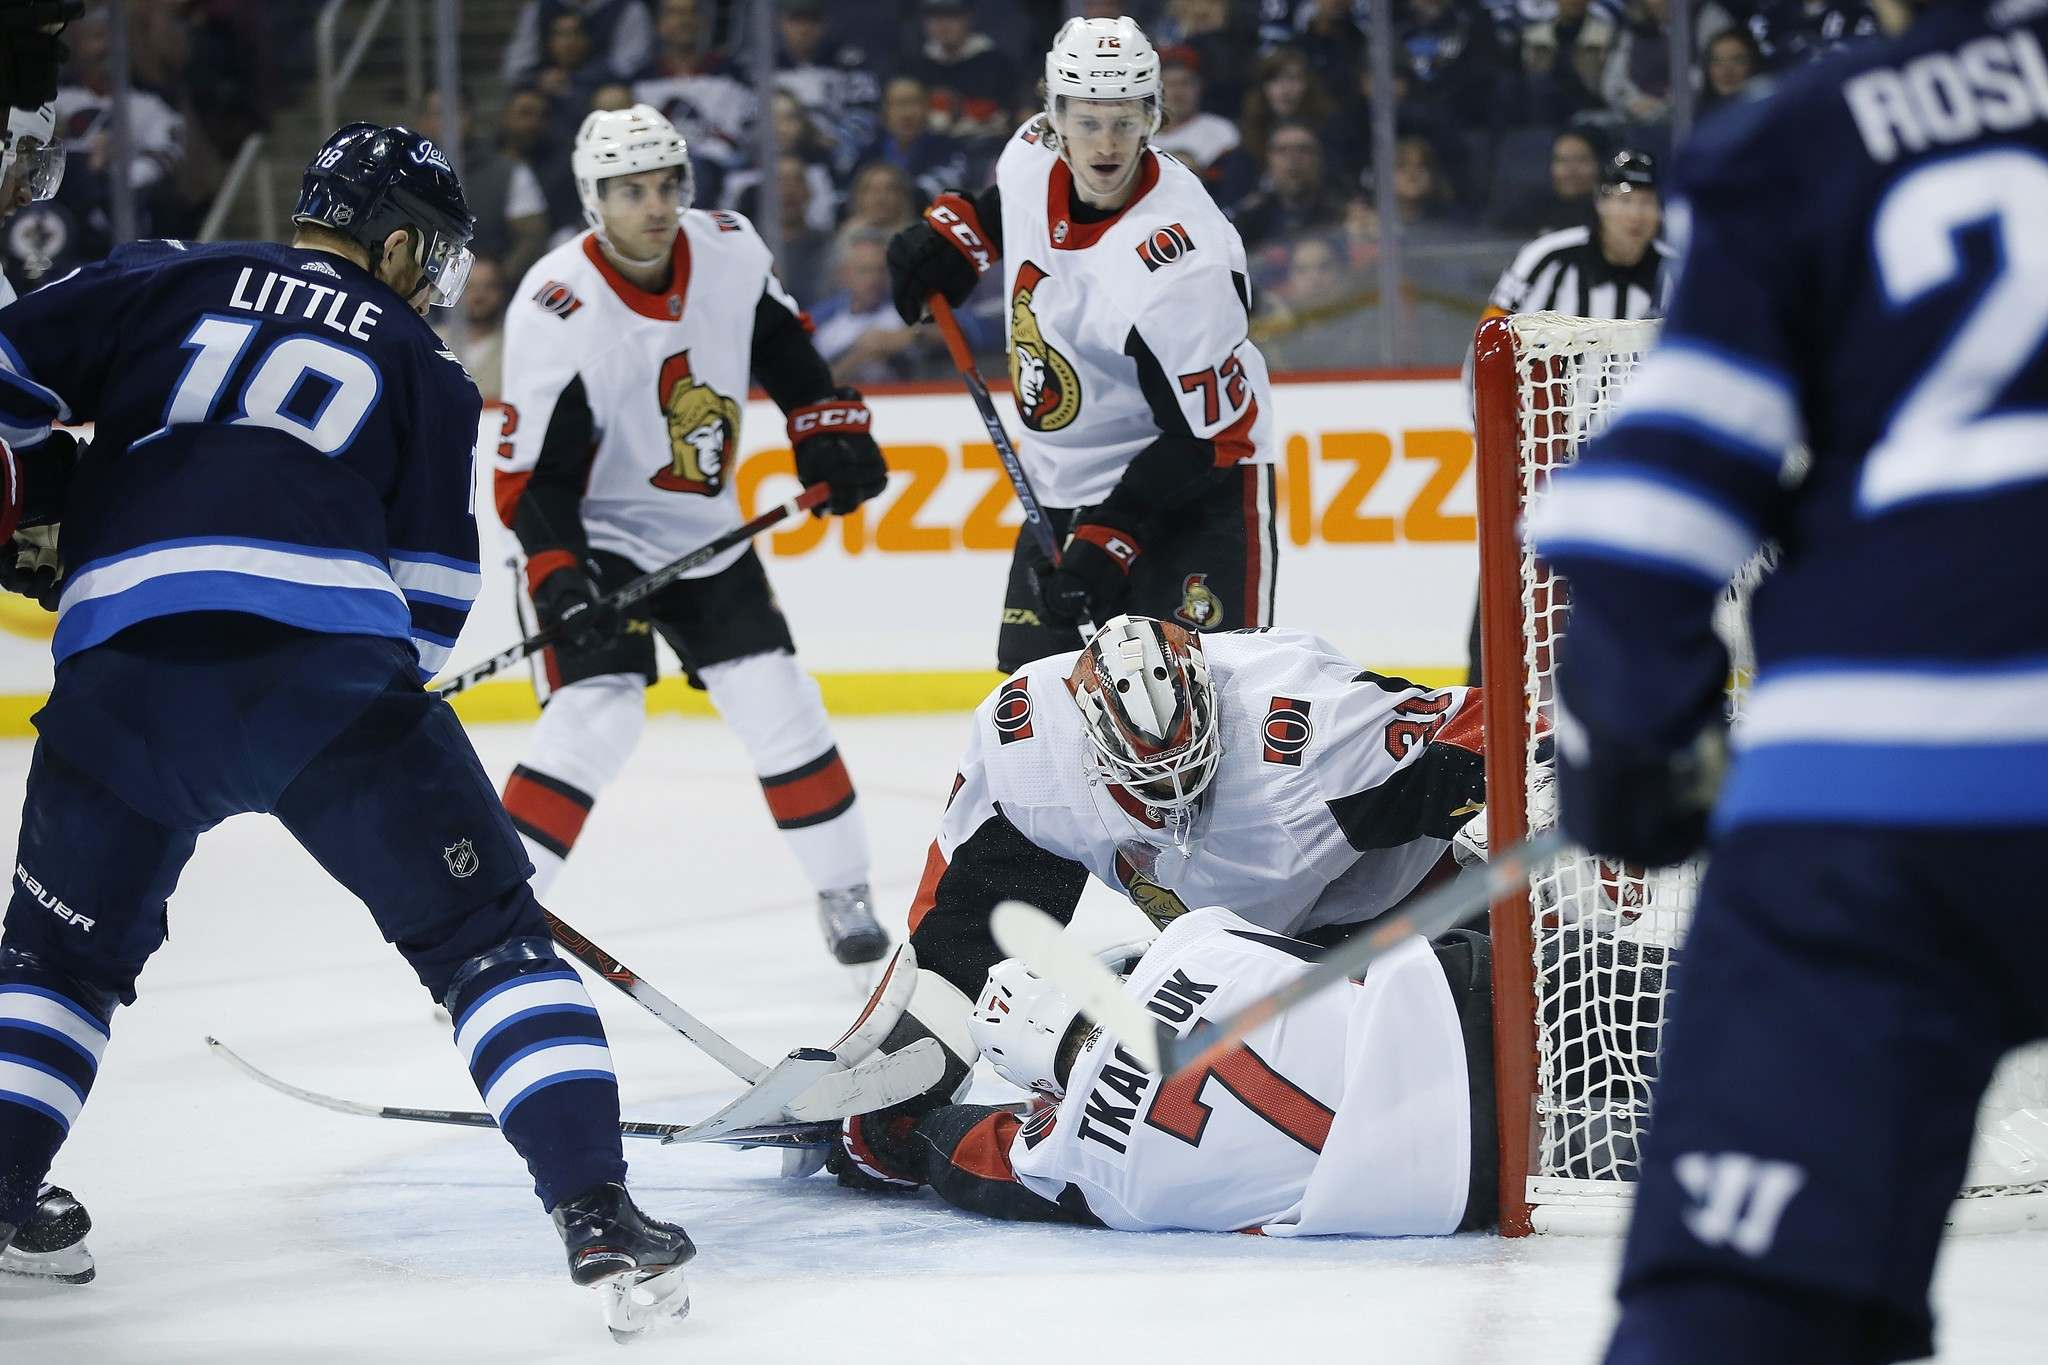 Winnipeg Jets' Bryan Little (18) looks on as Ottawa Senators goaltender Anders Nilsson (31) and Brady Tkachuk (7) smother his shot during second period NHL action in Winnipeg on Saturday, February 16, 2019. THE CANADIAN PRESS/John Woods</p>